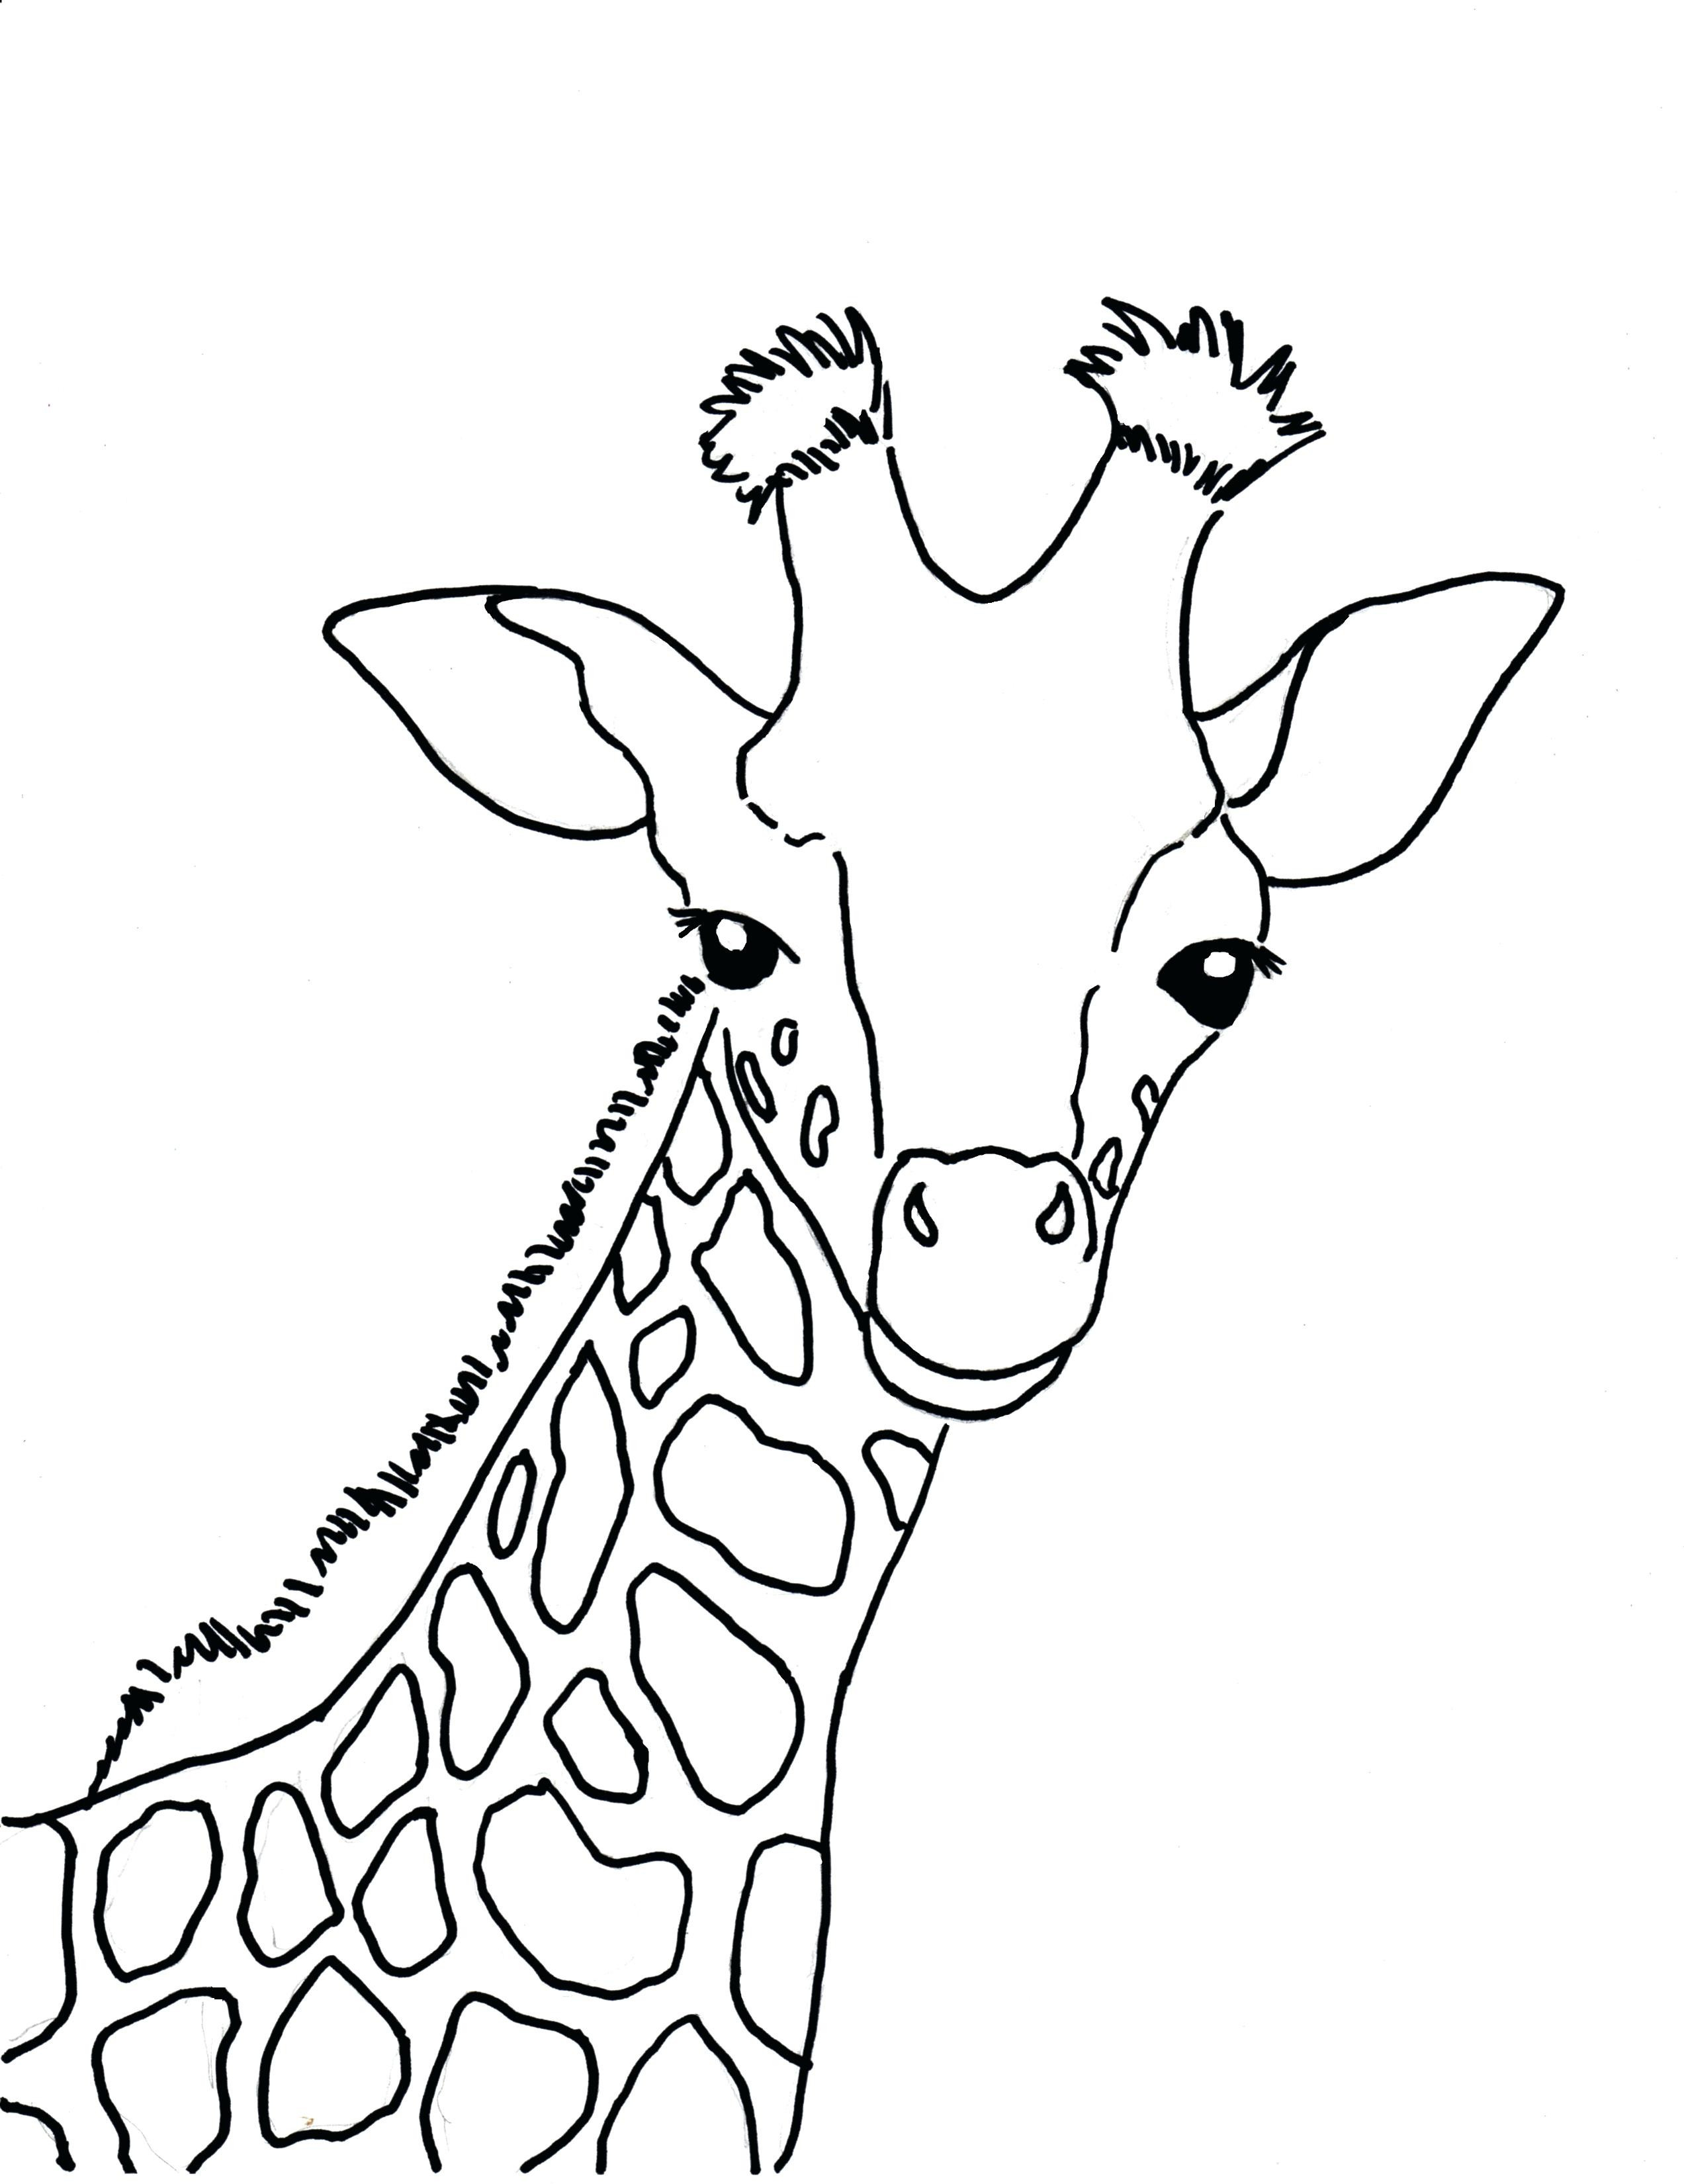 2545x3300 Cute Cartoon Baby Giraffe Coloring Page Free Printable Pages